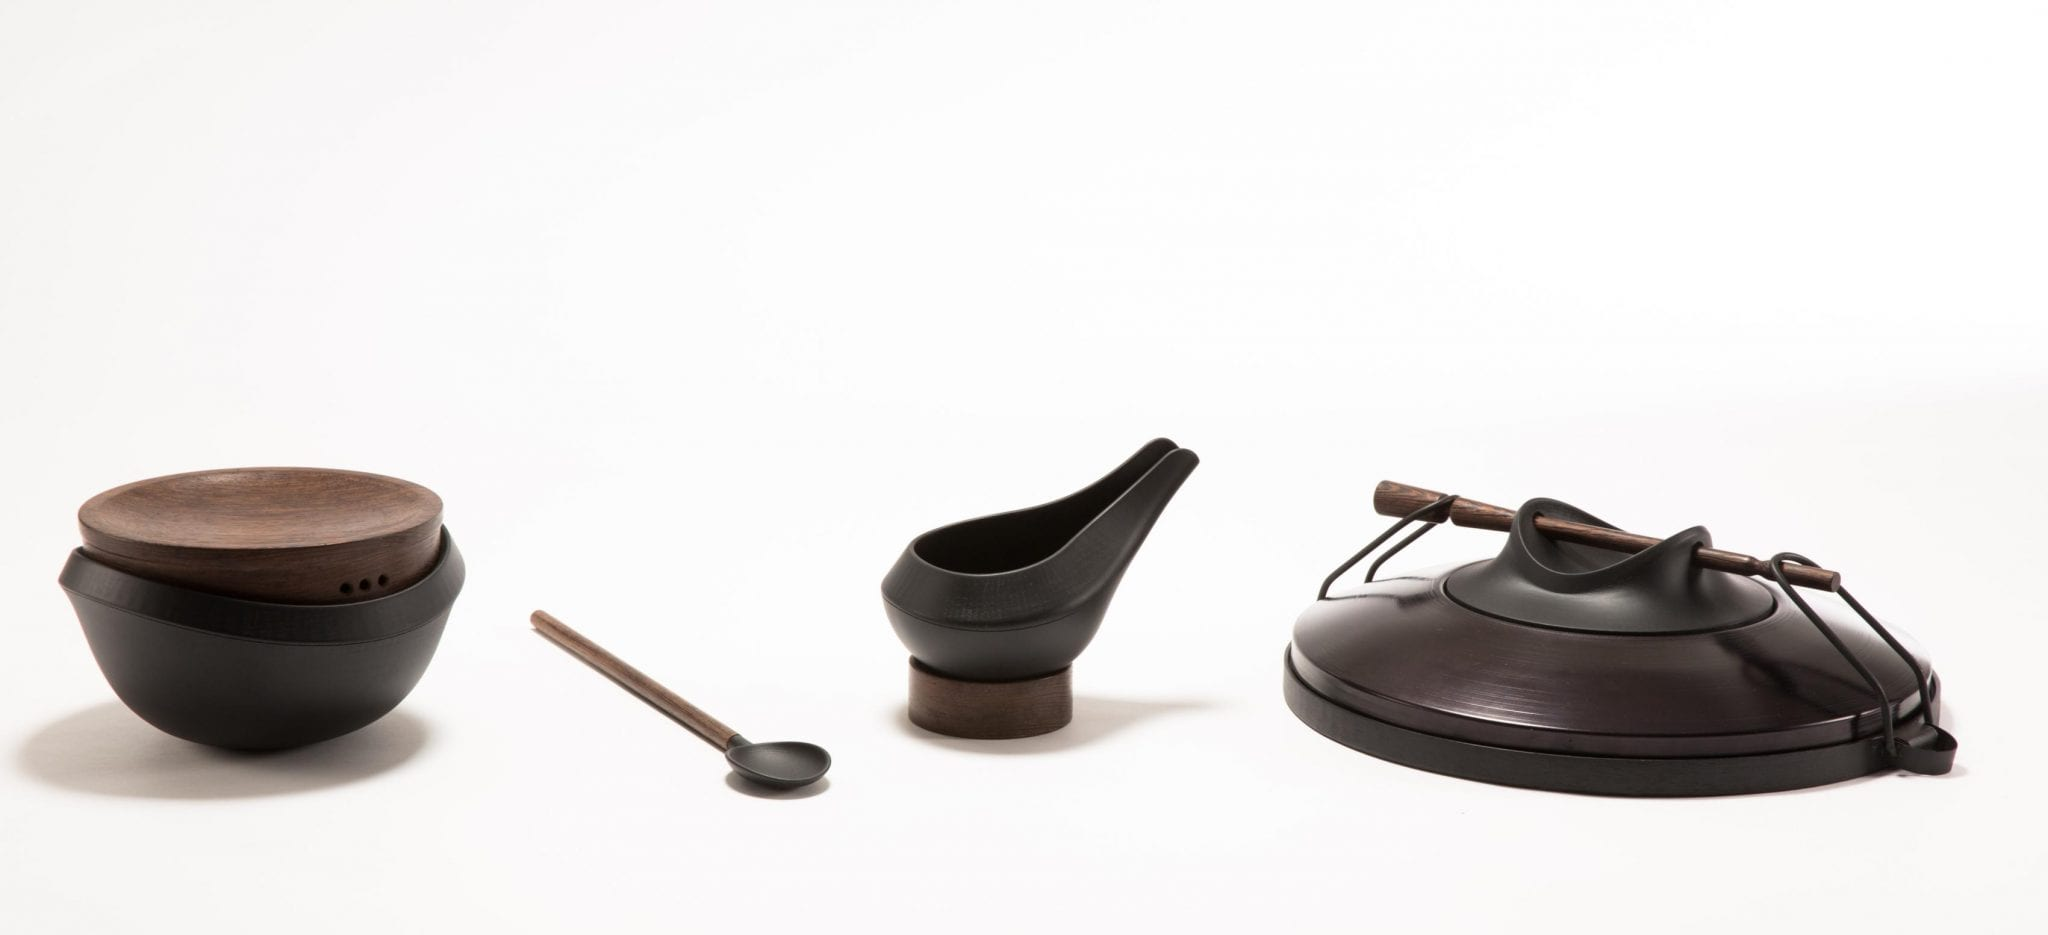 A set of utensils for a new preparation ceremony of Injera 2